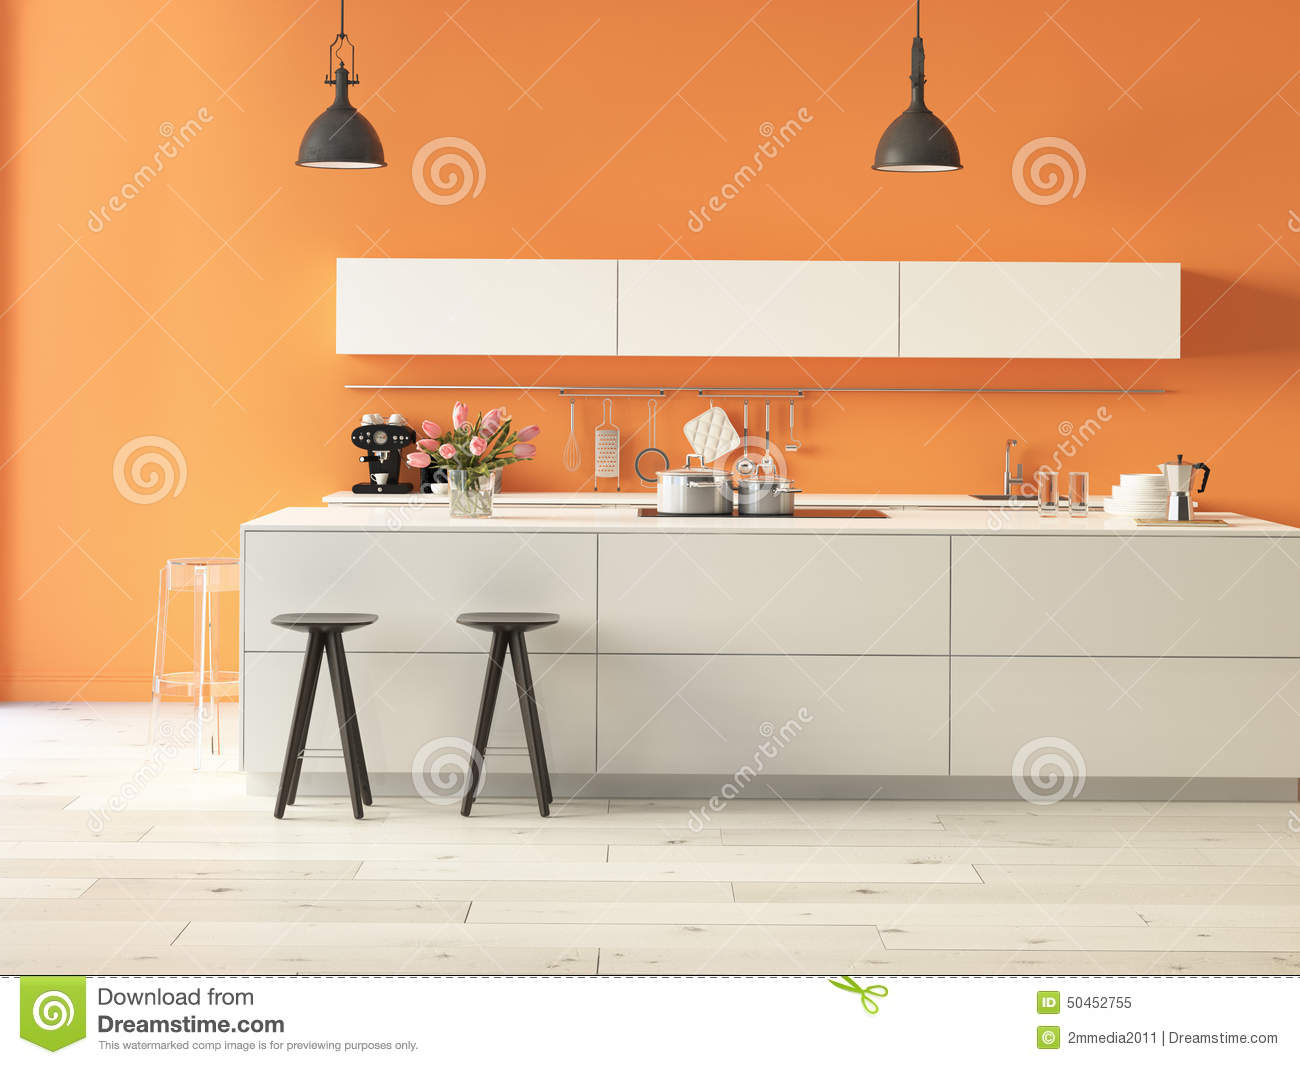 Luxurious kitchen with stainless steel appliances stock photo image 50452755 - Luxurious kitchen appliances ...